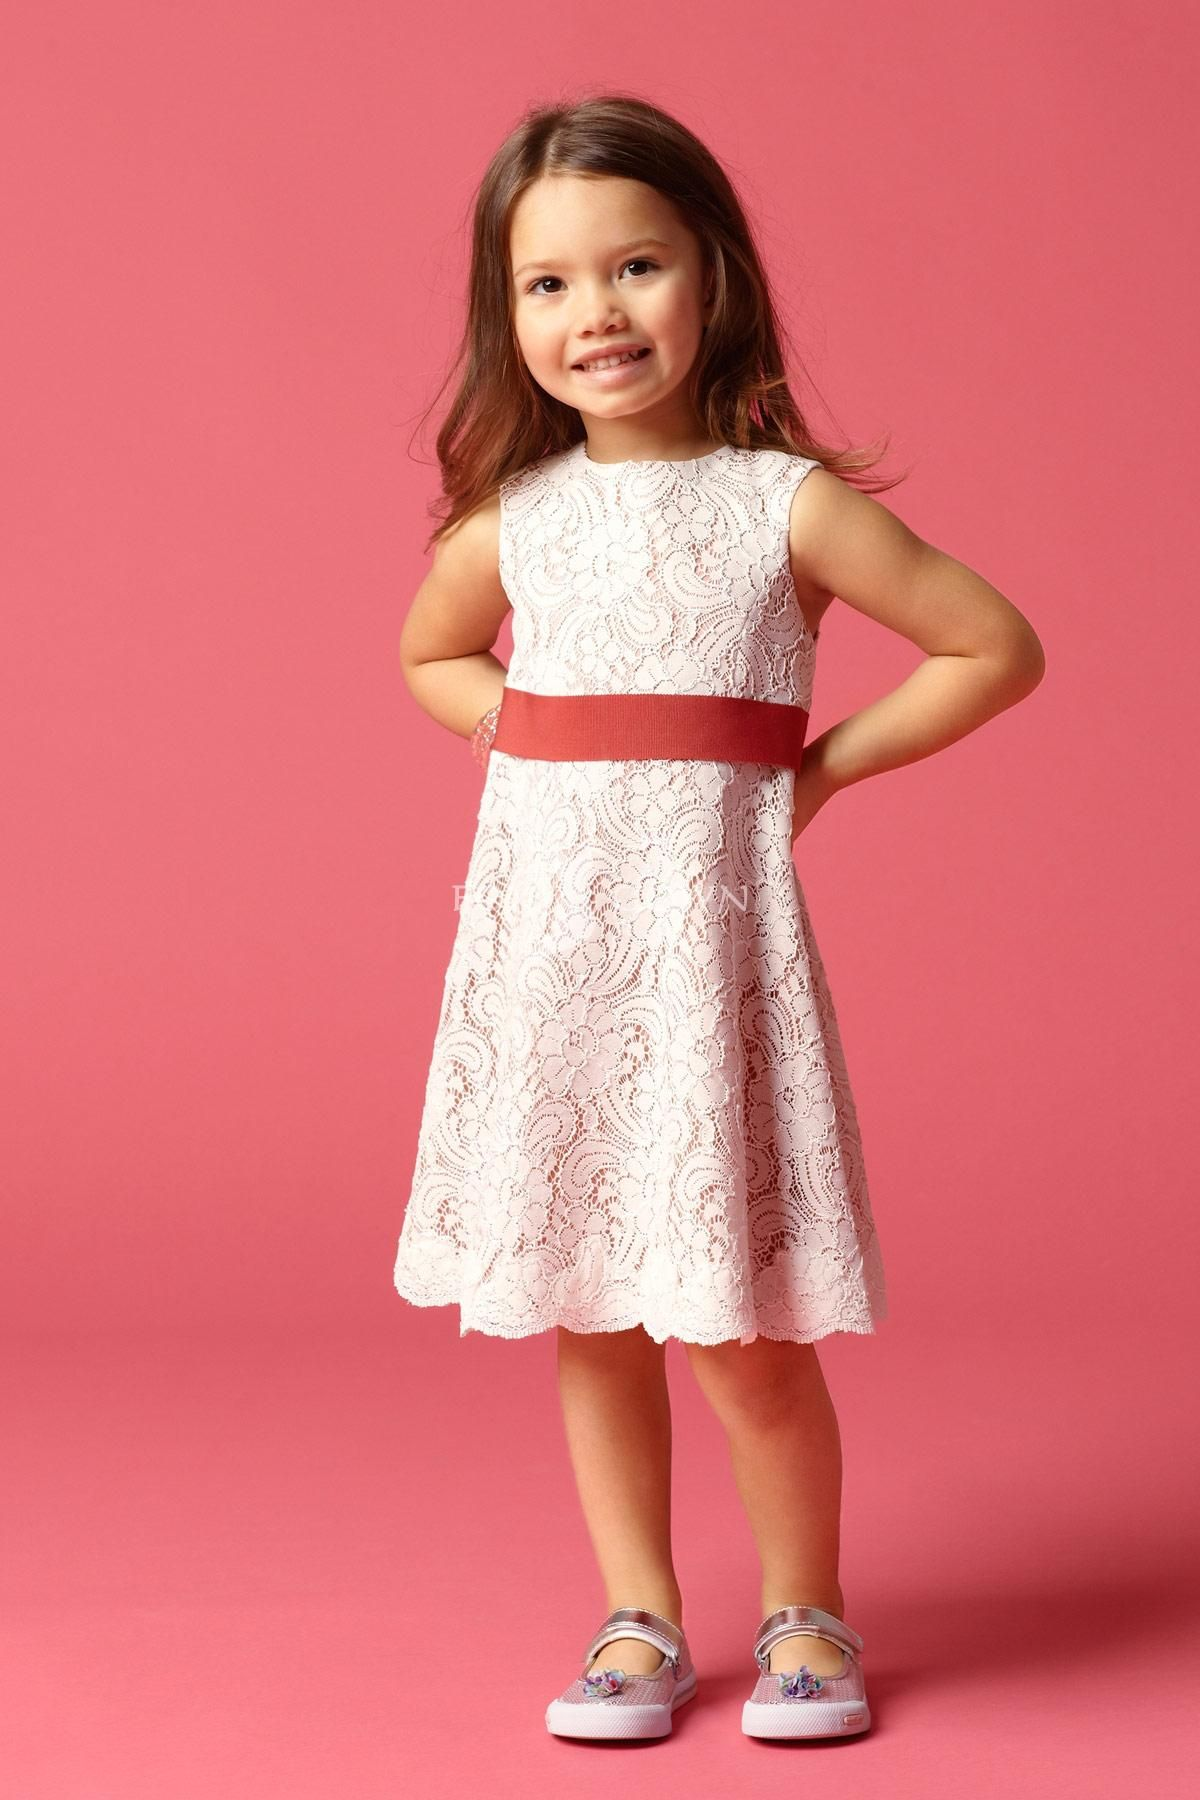 10 Best images about Flower Girl Dresses on Pinterest - A line ...